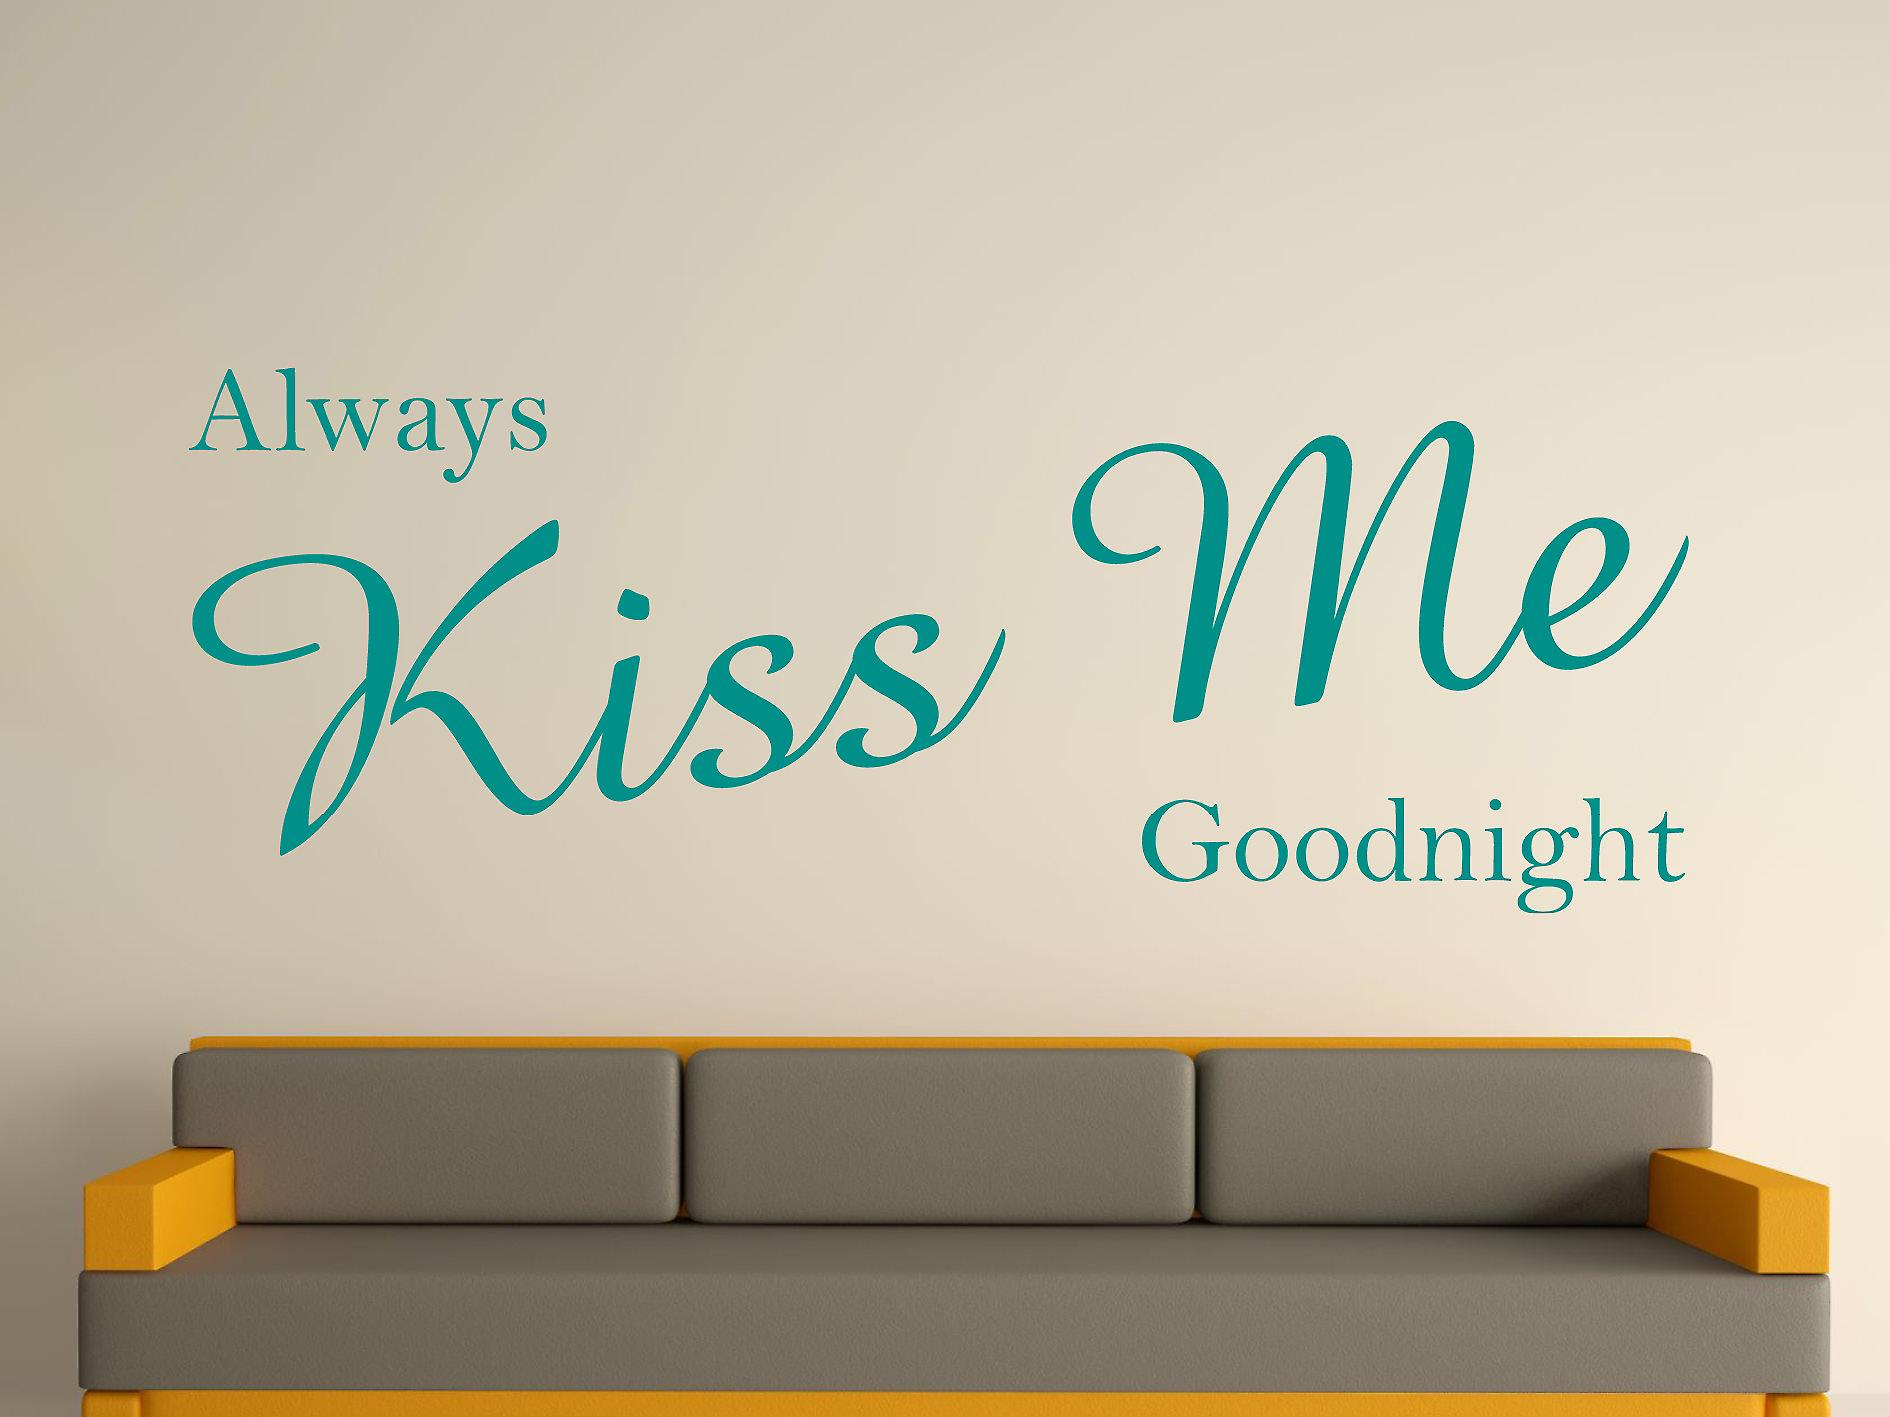 Always Kiss Me Goodnight Wall Art Sticker - Aqua Green